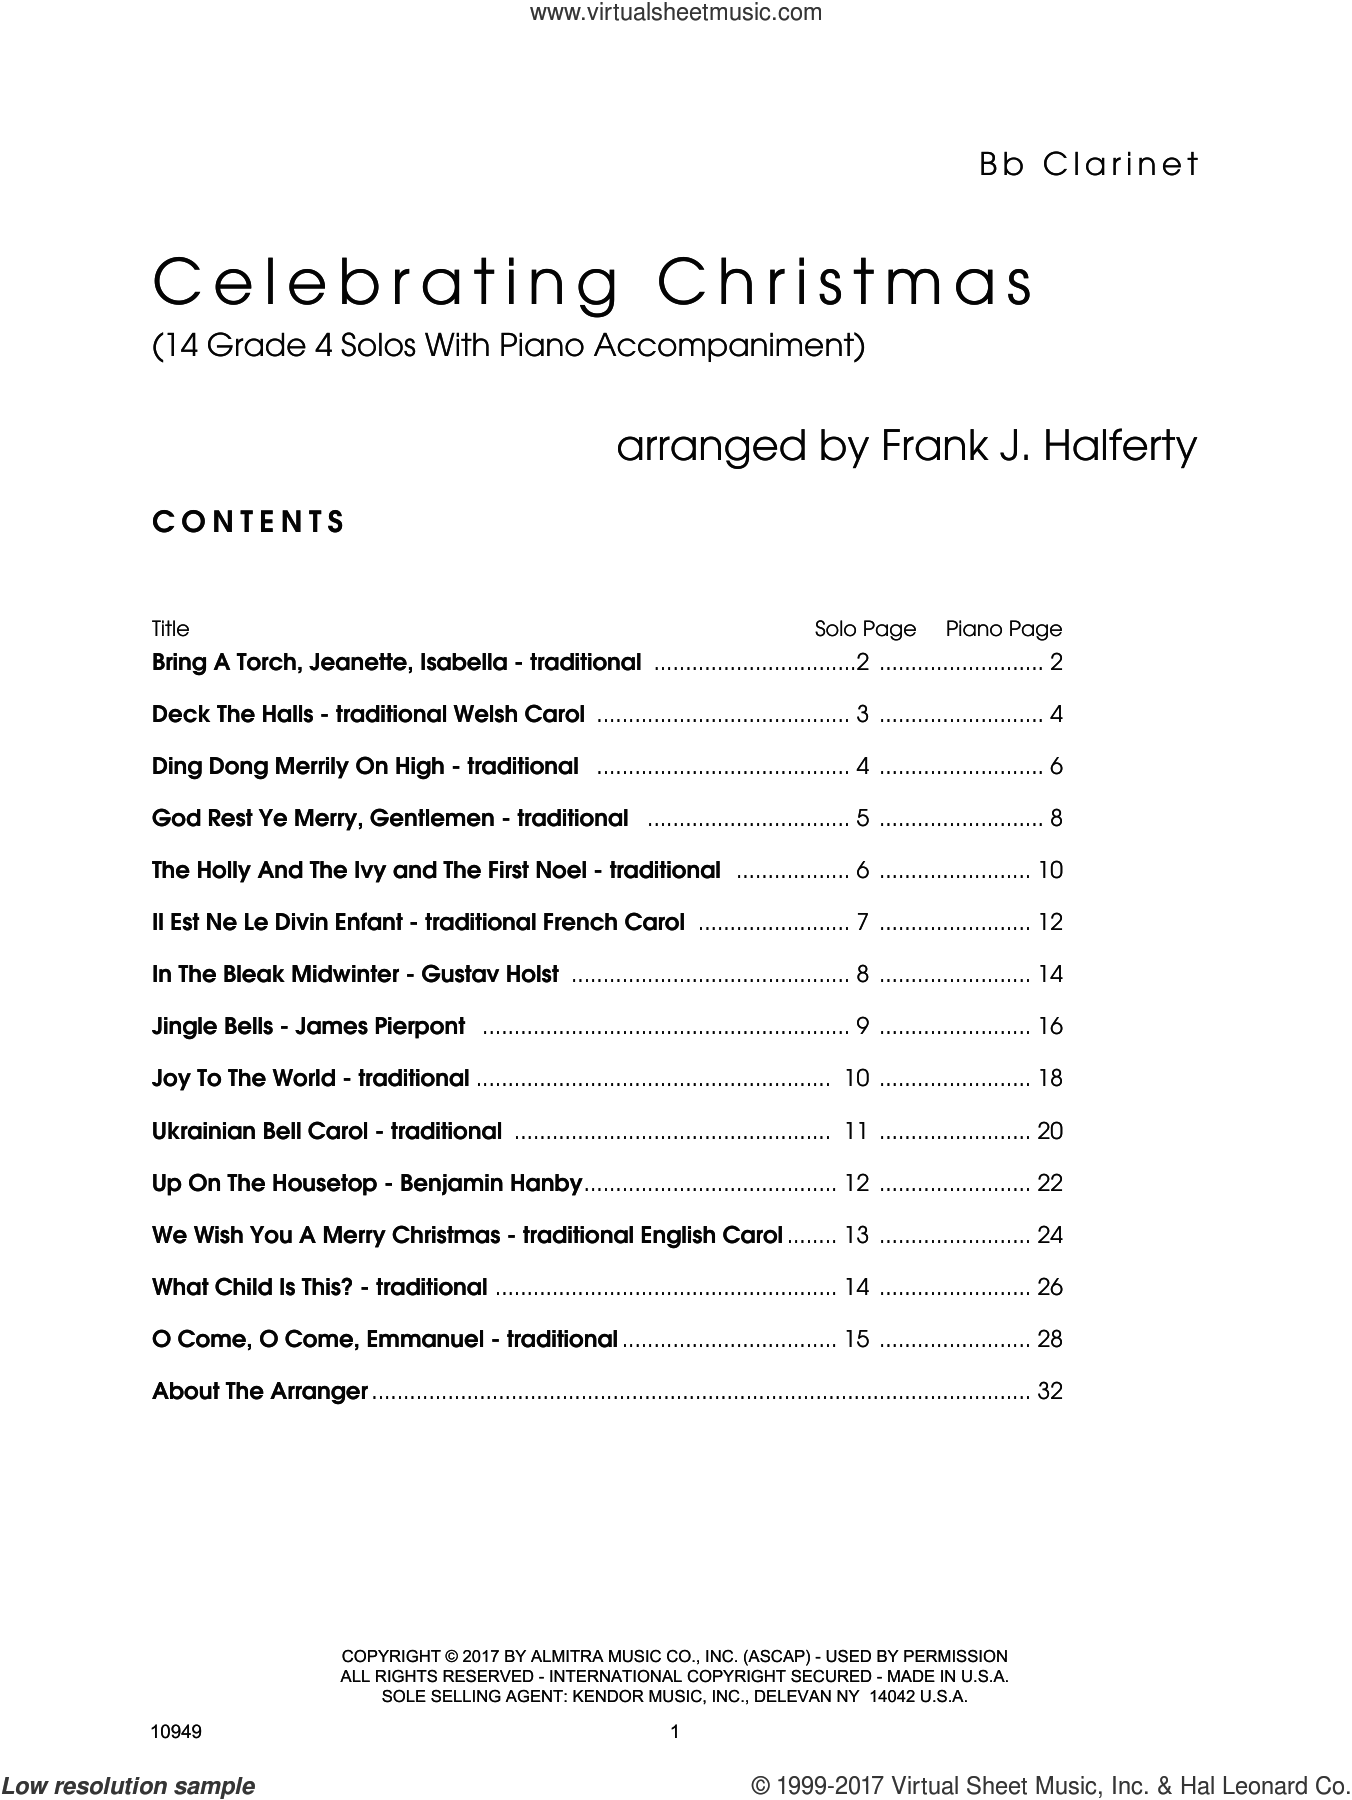 Celebrating Christmas (14 Grade 4 Solos With Piano Accompaniment) (complete set of parts) sheet music for clarinet and piano by Frank J. Halferty, intermediate skill level